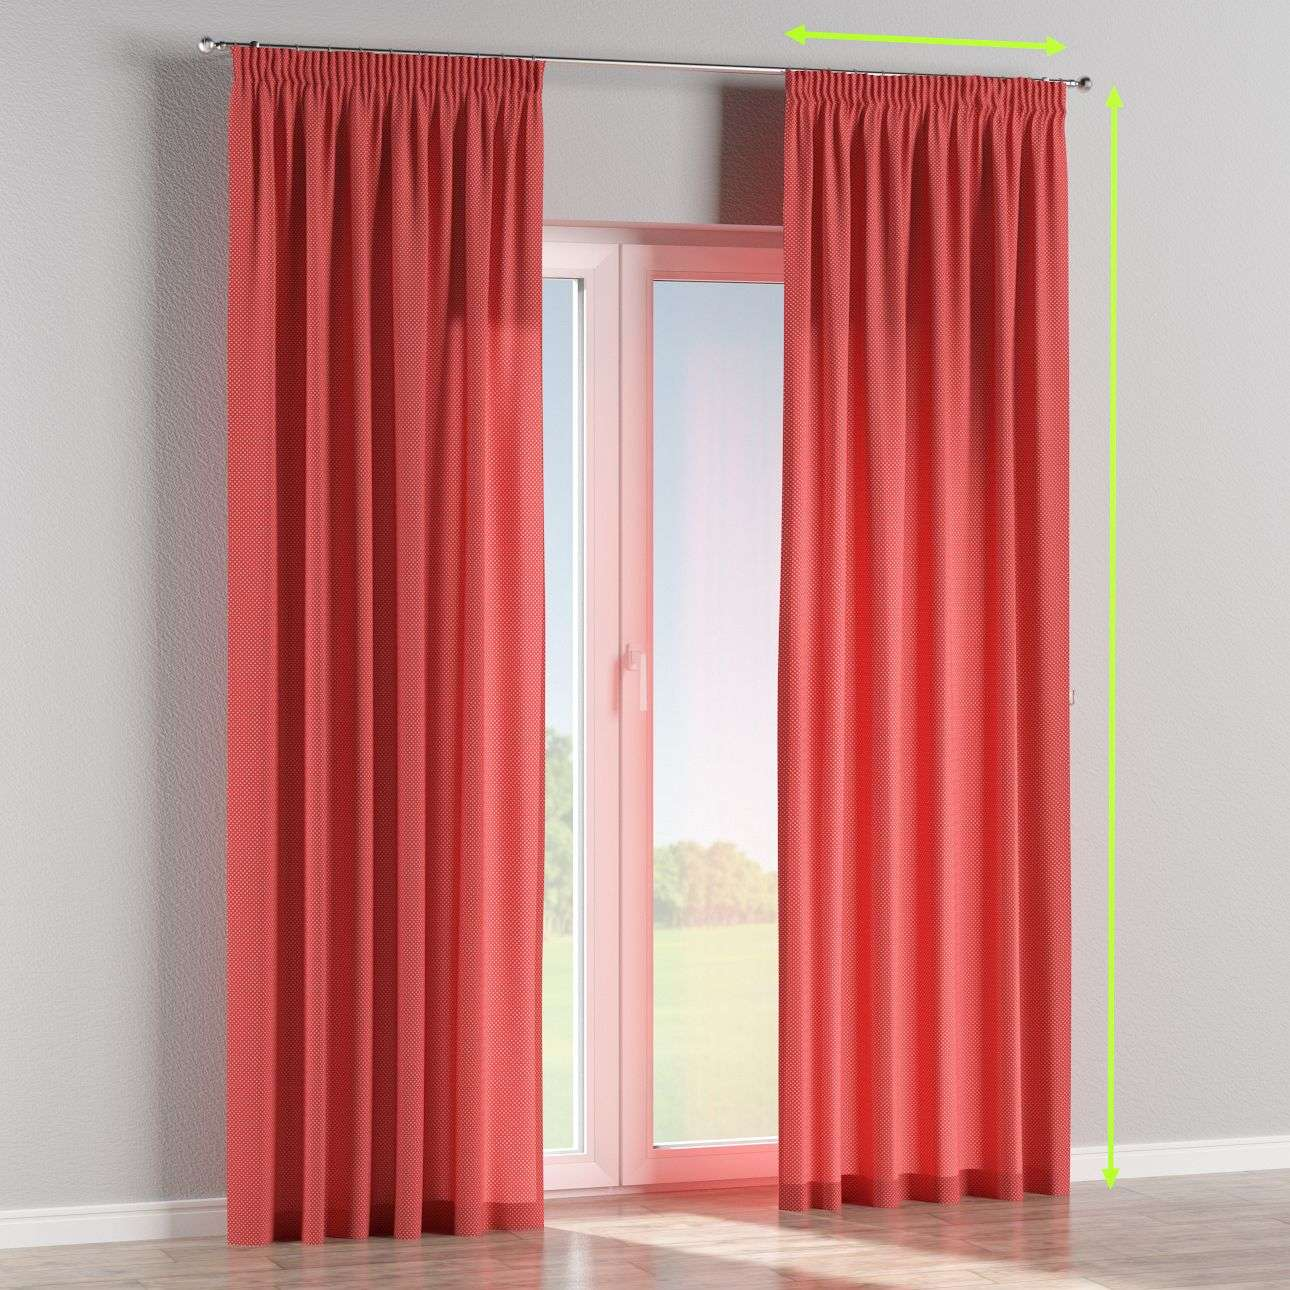 Pencil pleat curtains in collection Ashley, fabric: 137-50